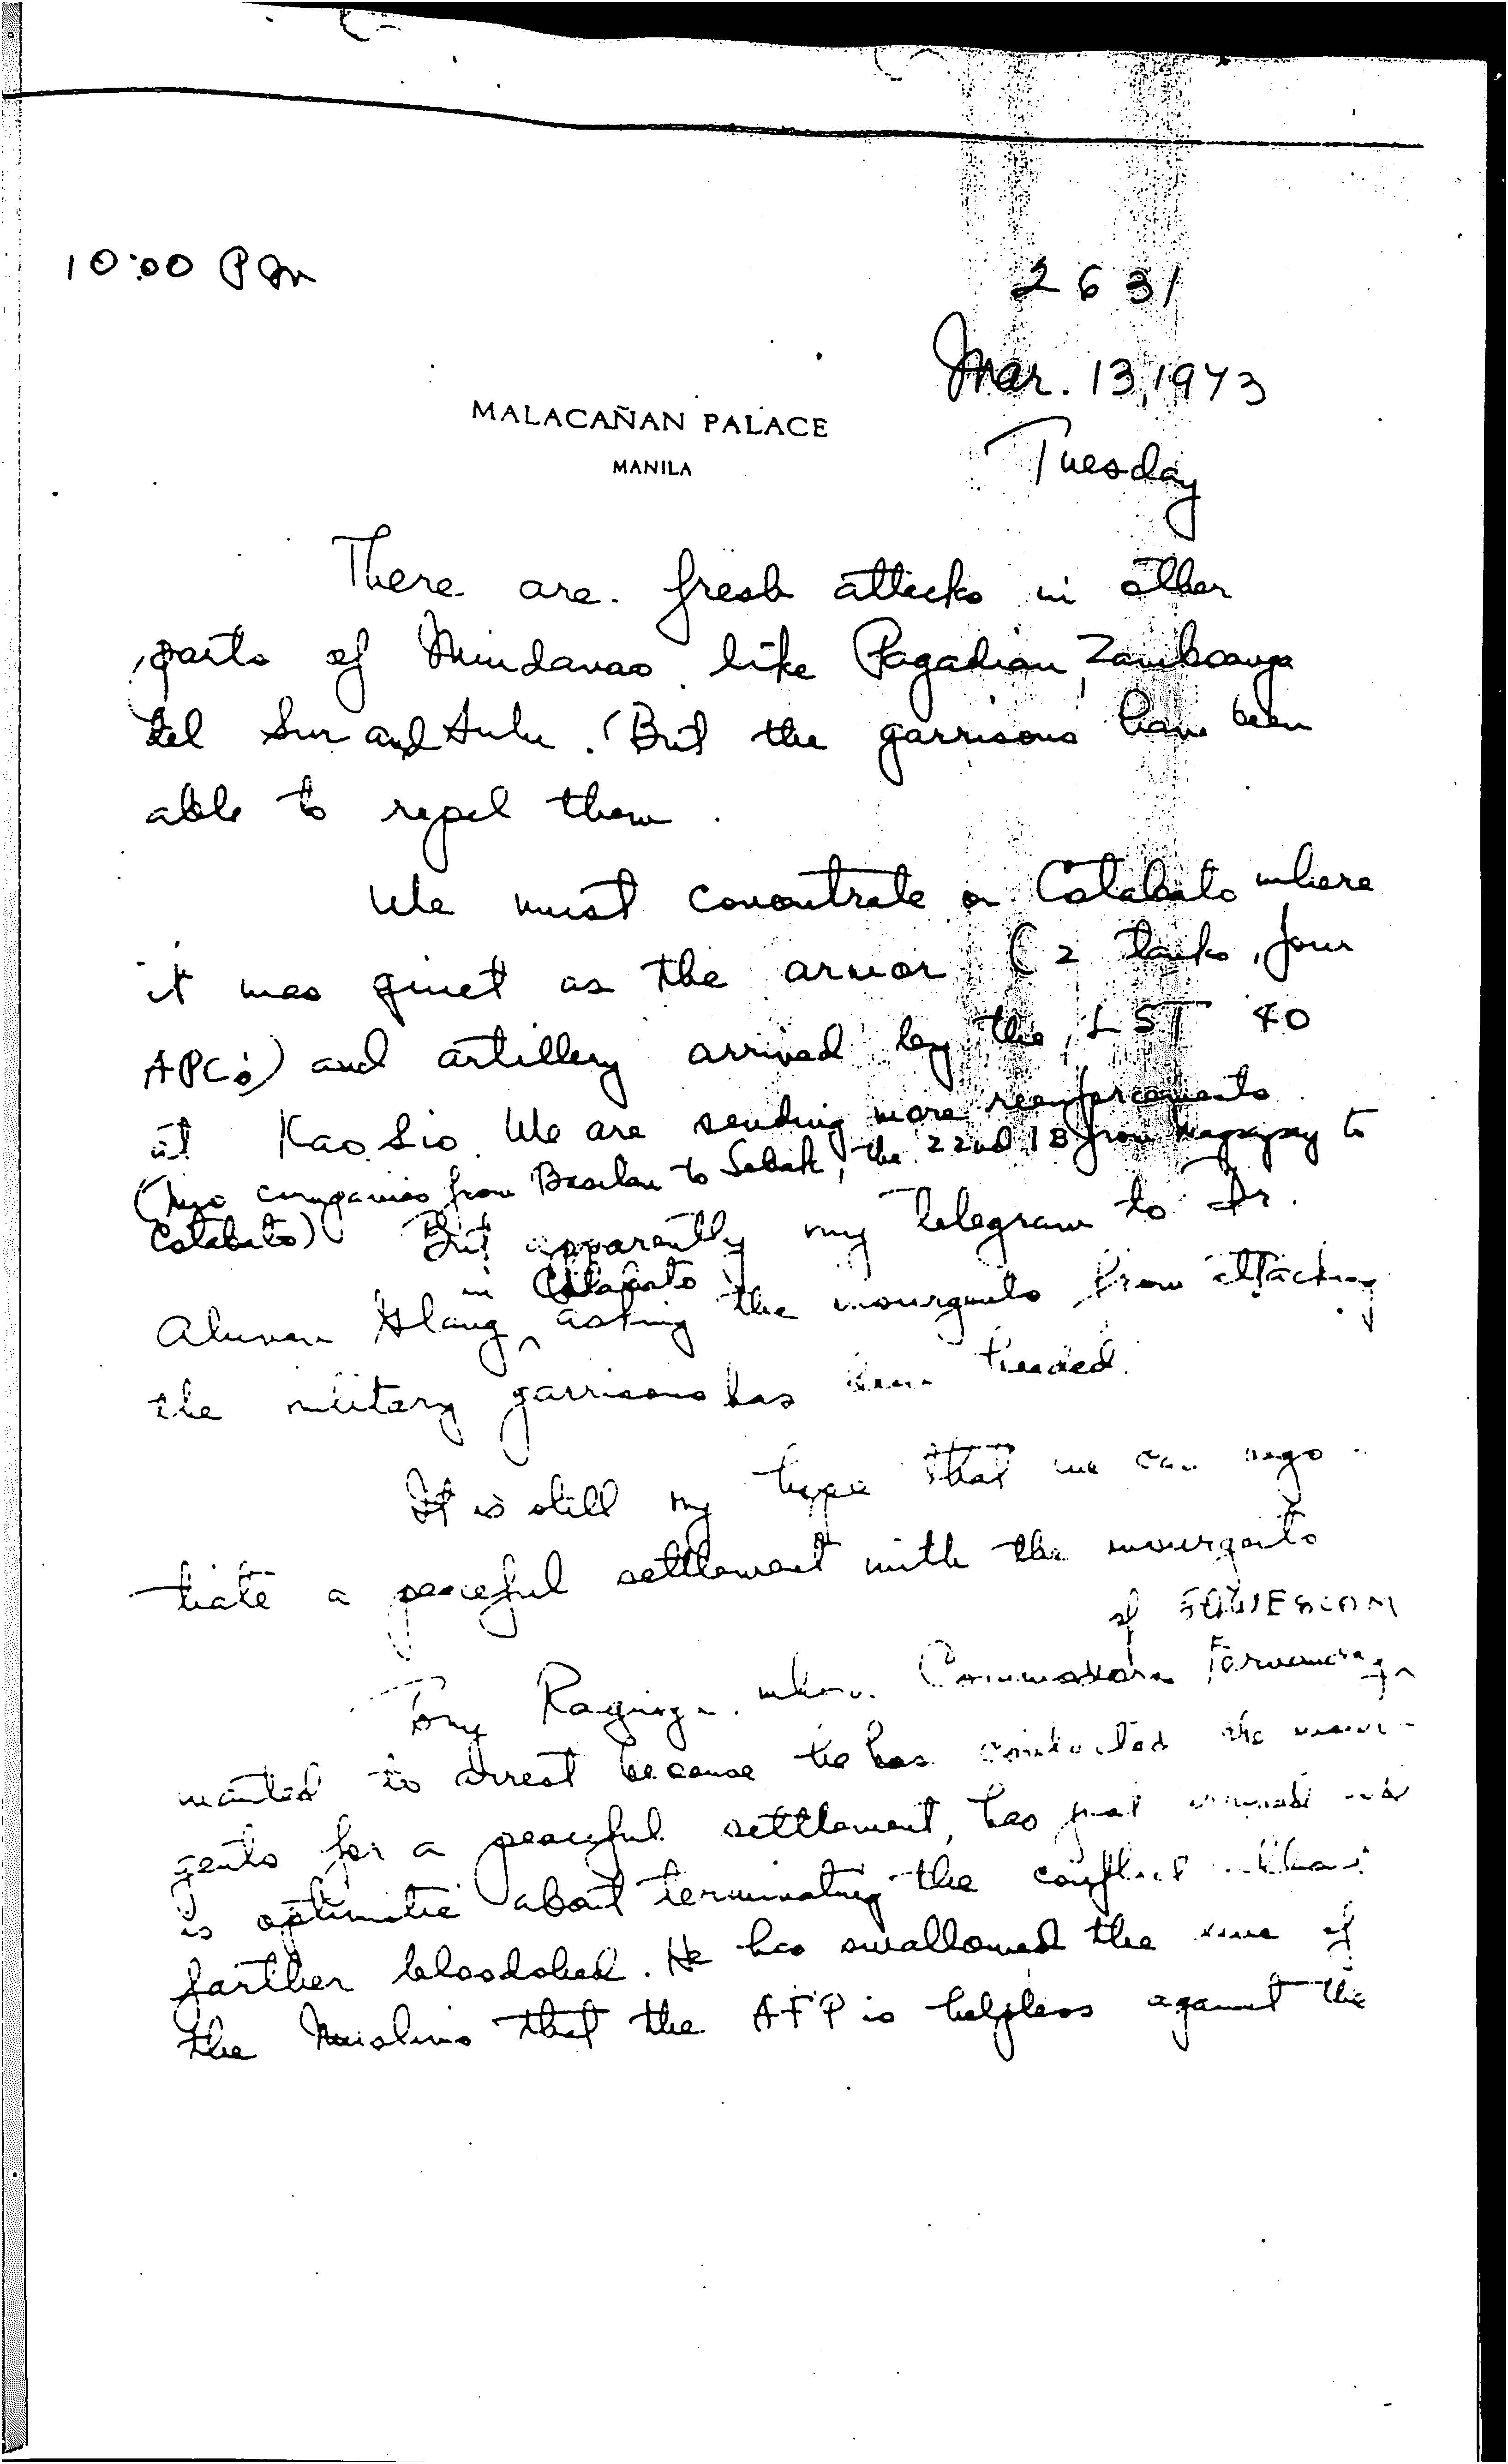 1973 Marcos Diary Black Book_Page_056